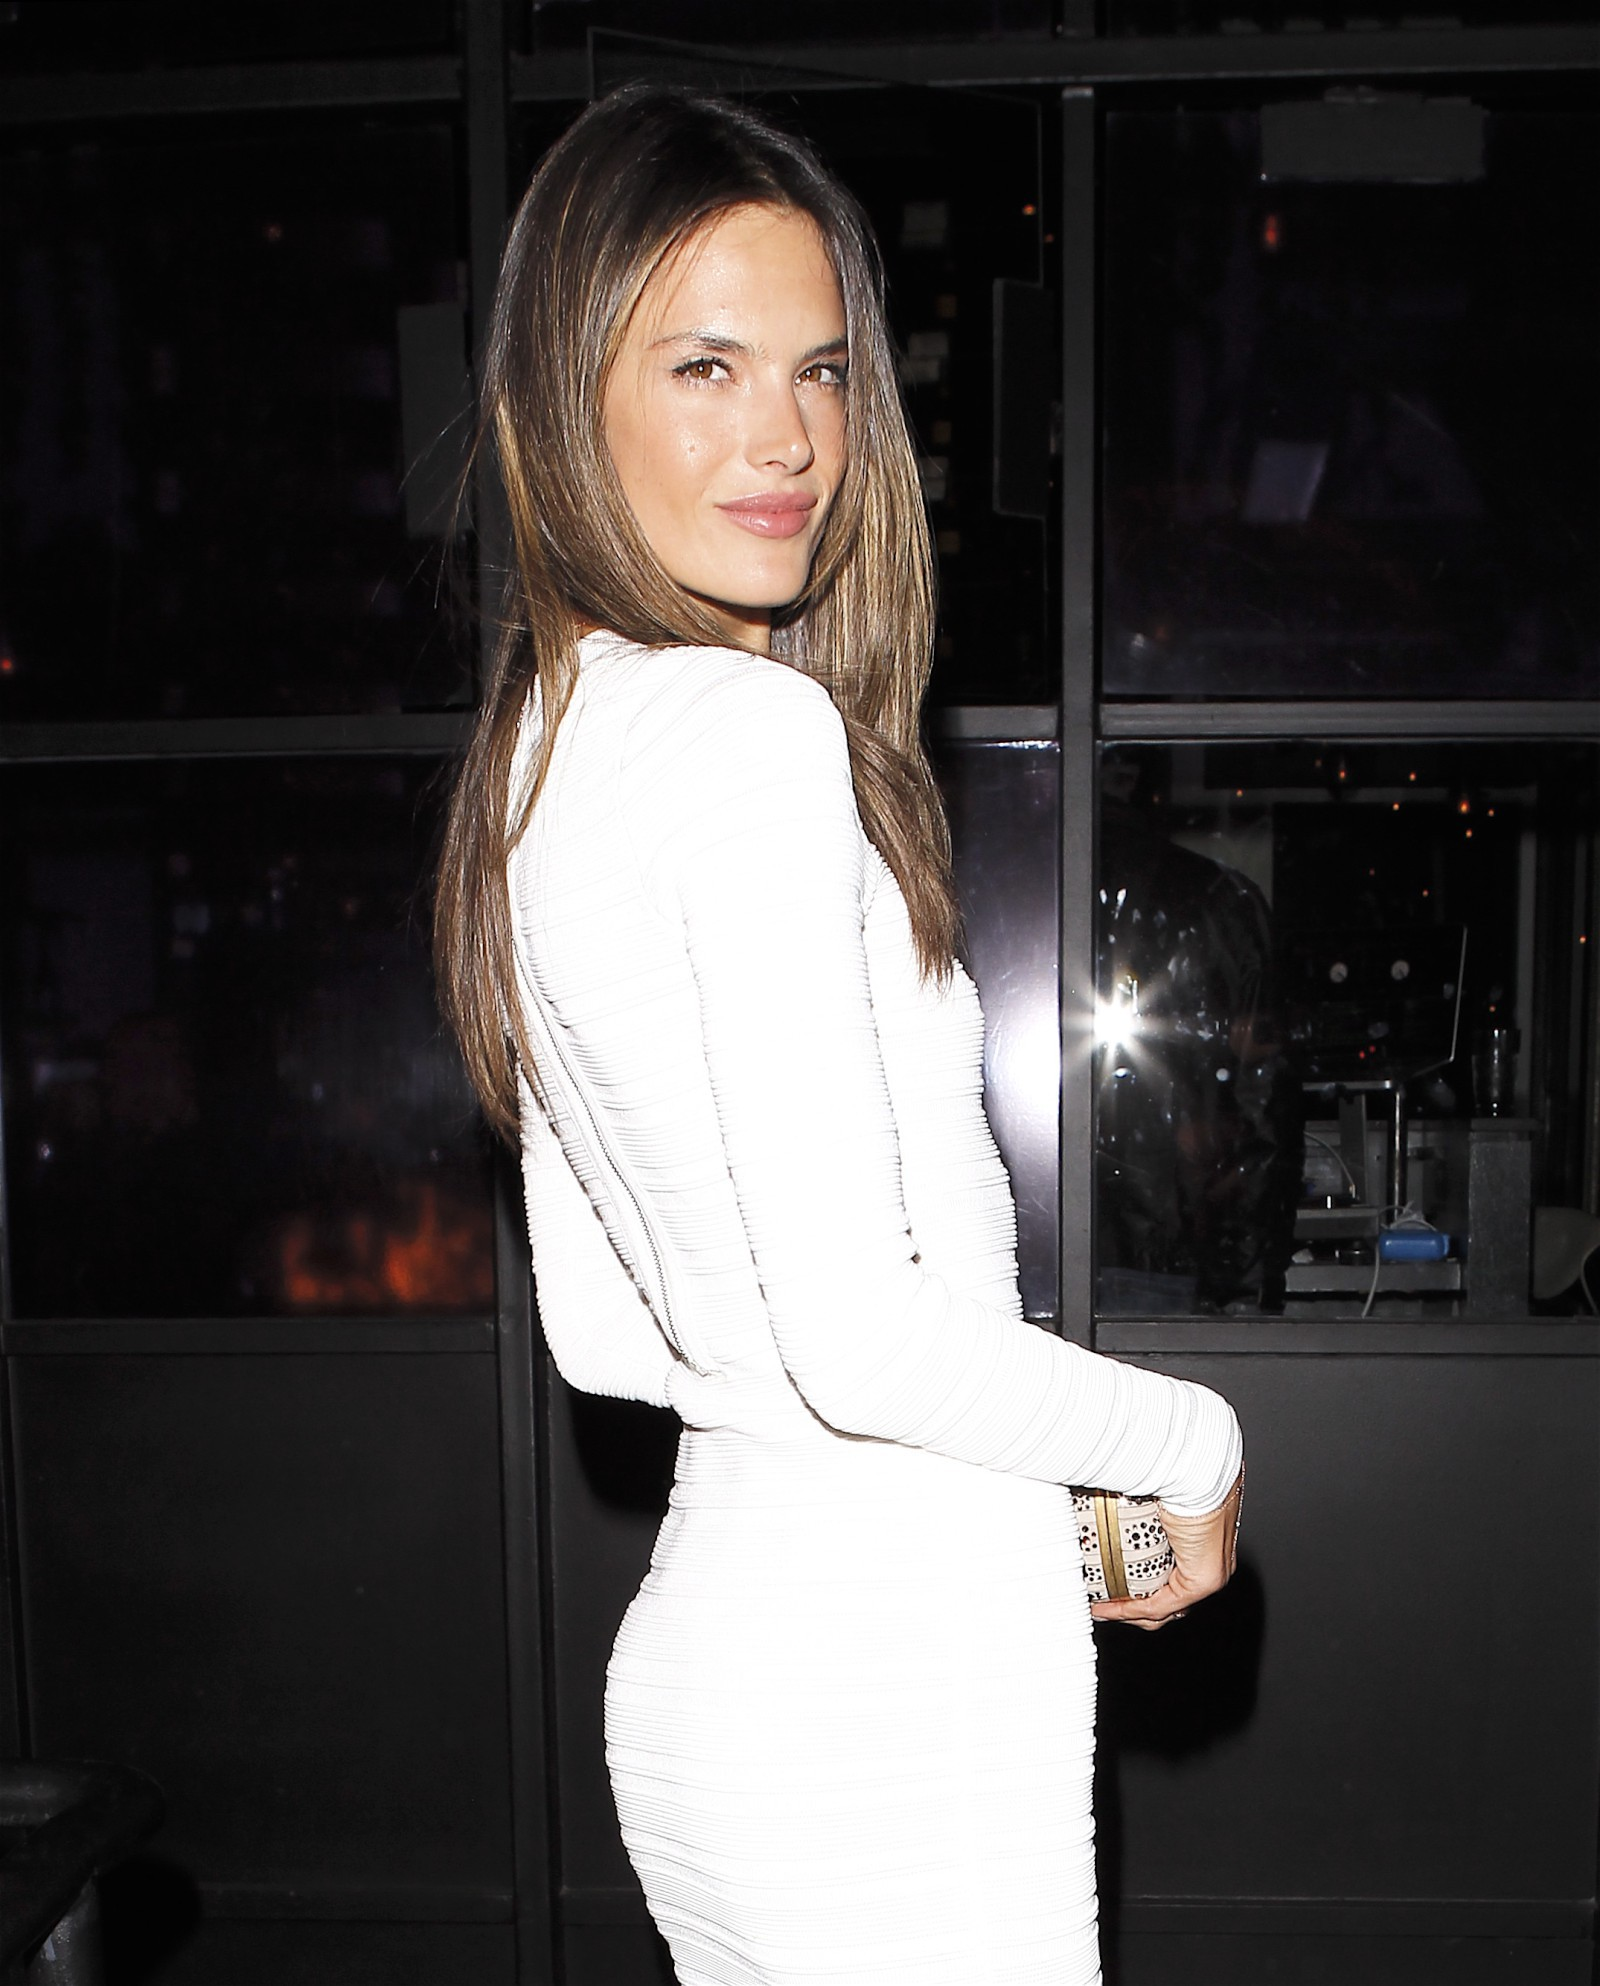 Alessandra Ambrosio Spotted in White Dress in West Hollywood @her B'day AcwC7TyL